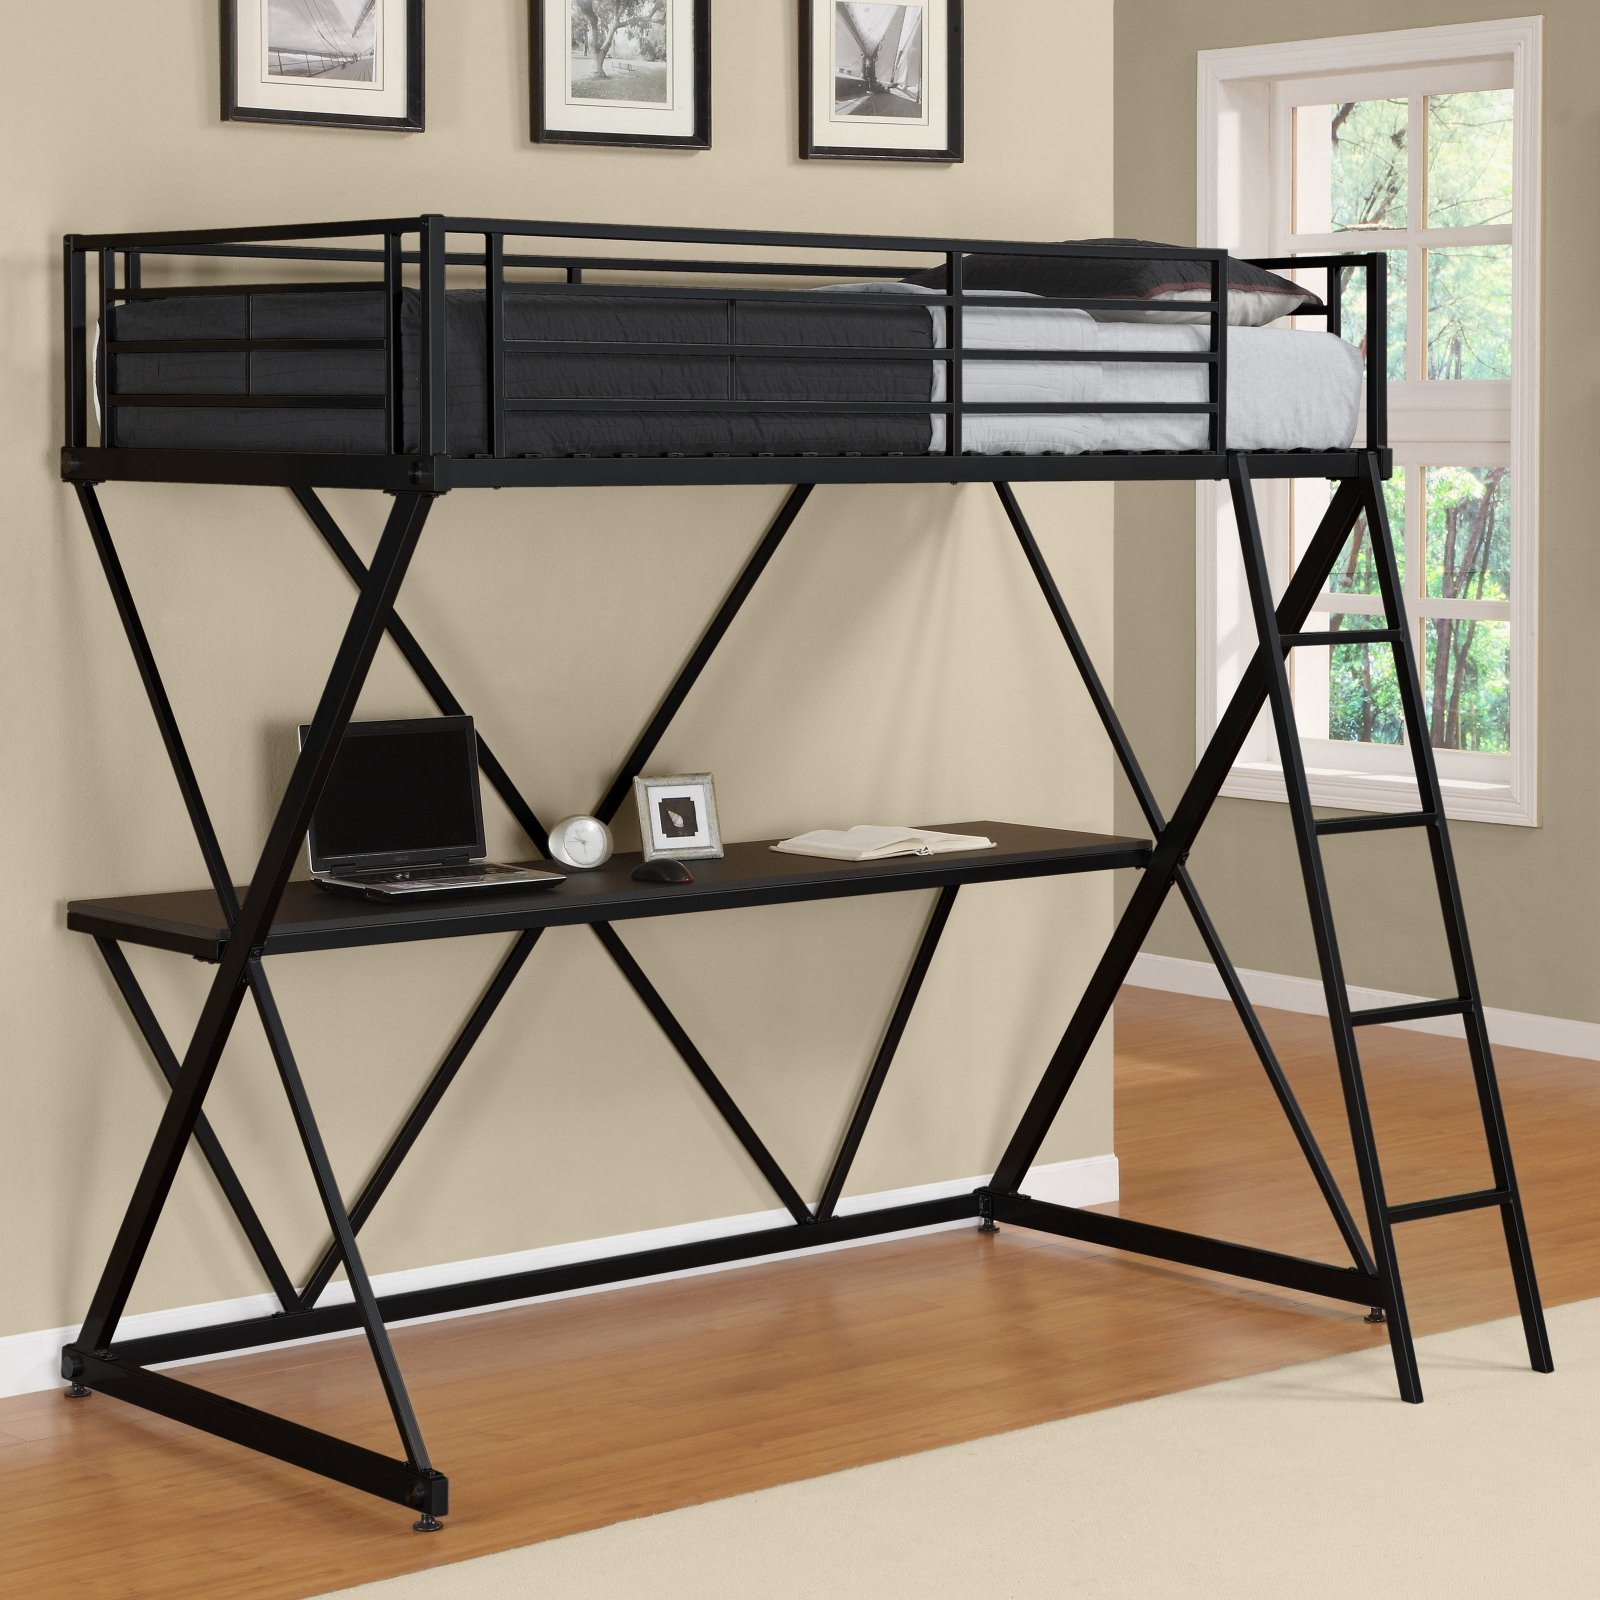 Charmant DHP X Twin Metal Loft Bed Over Desk Workstation, Black